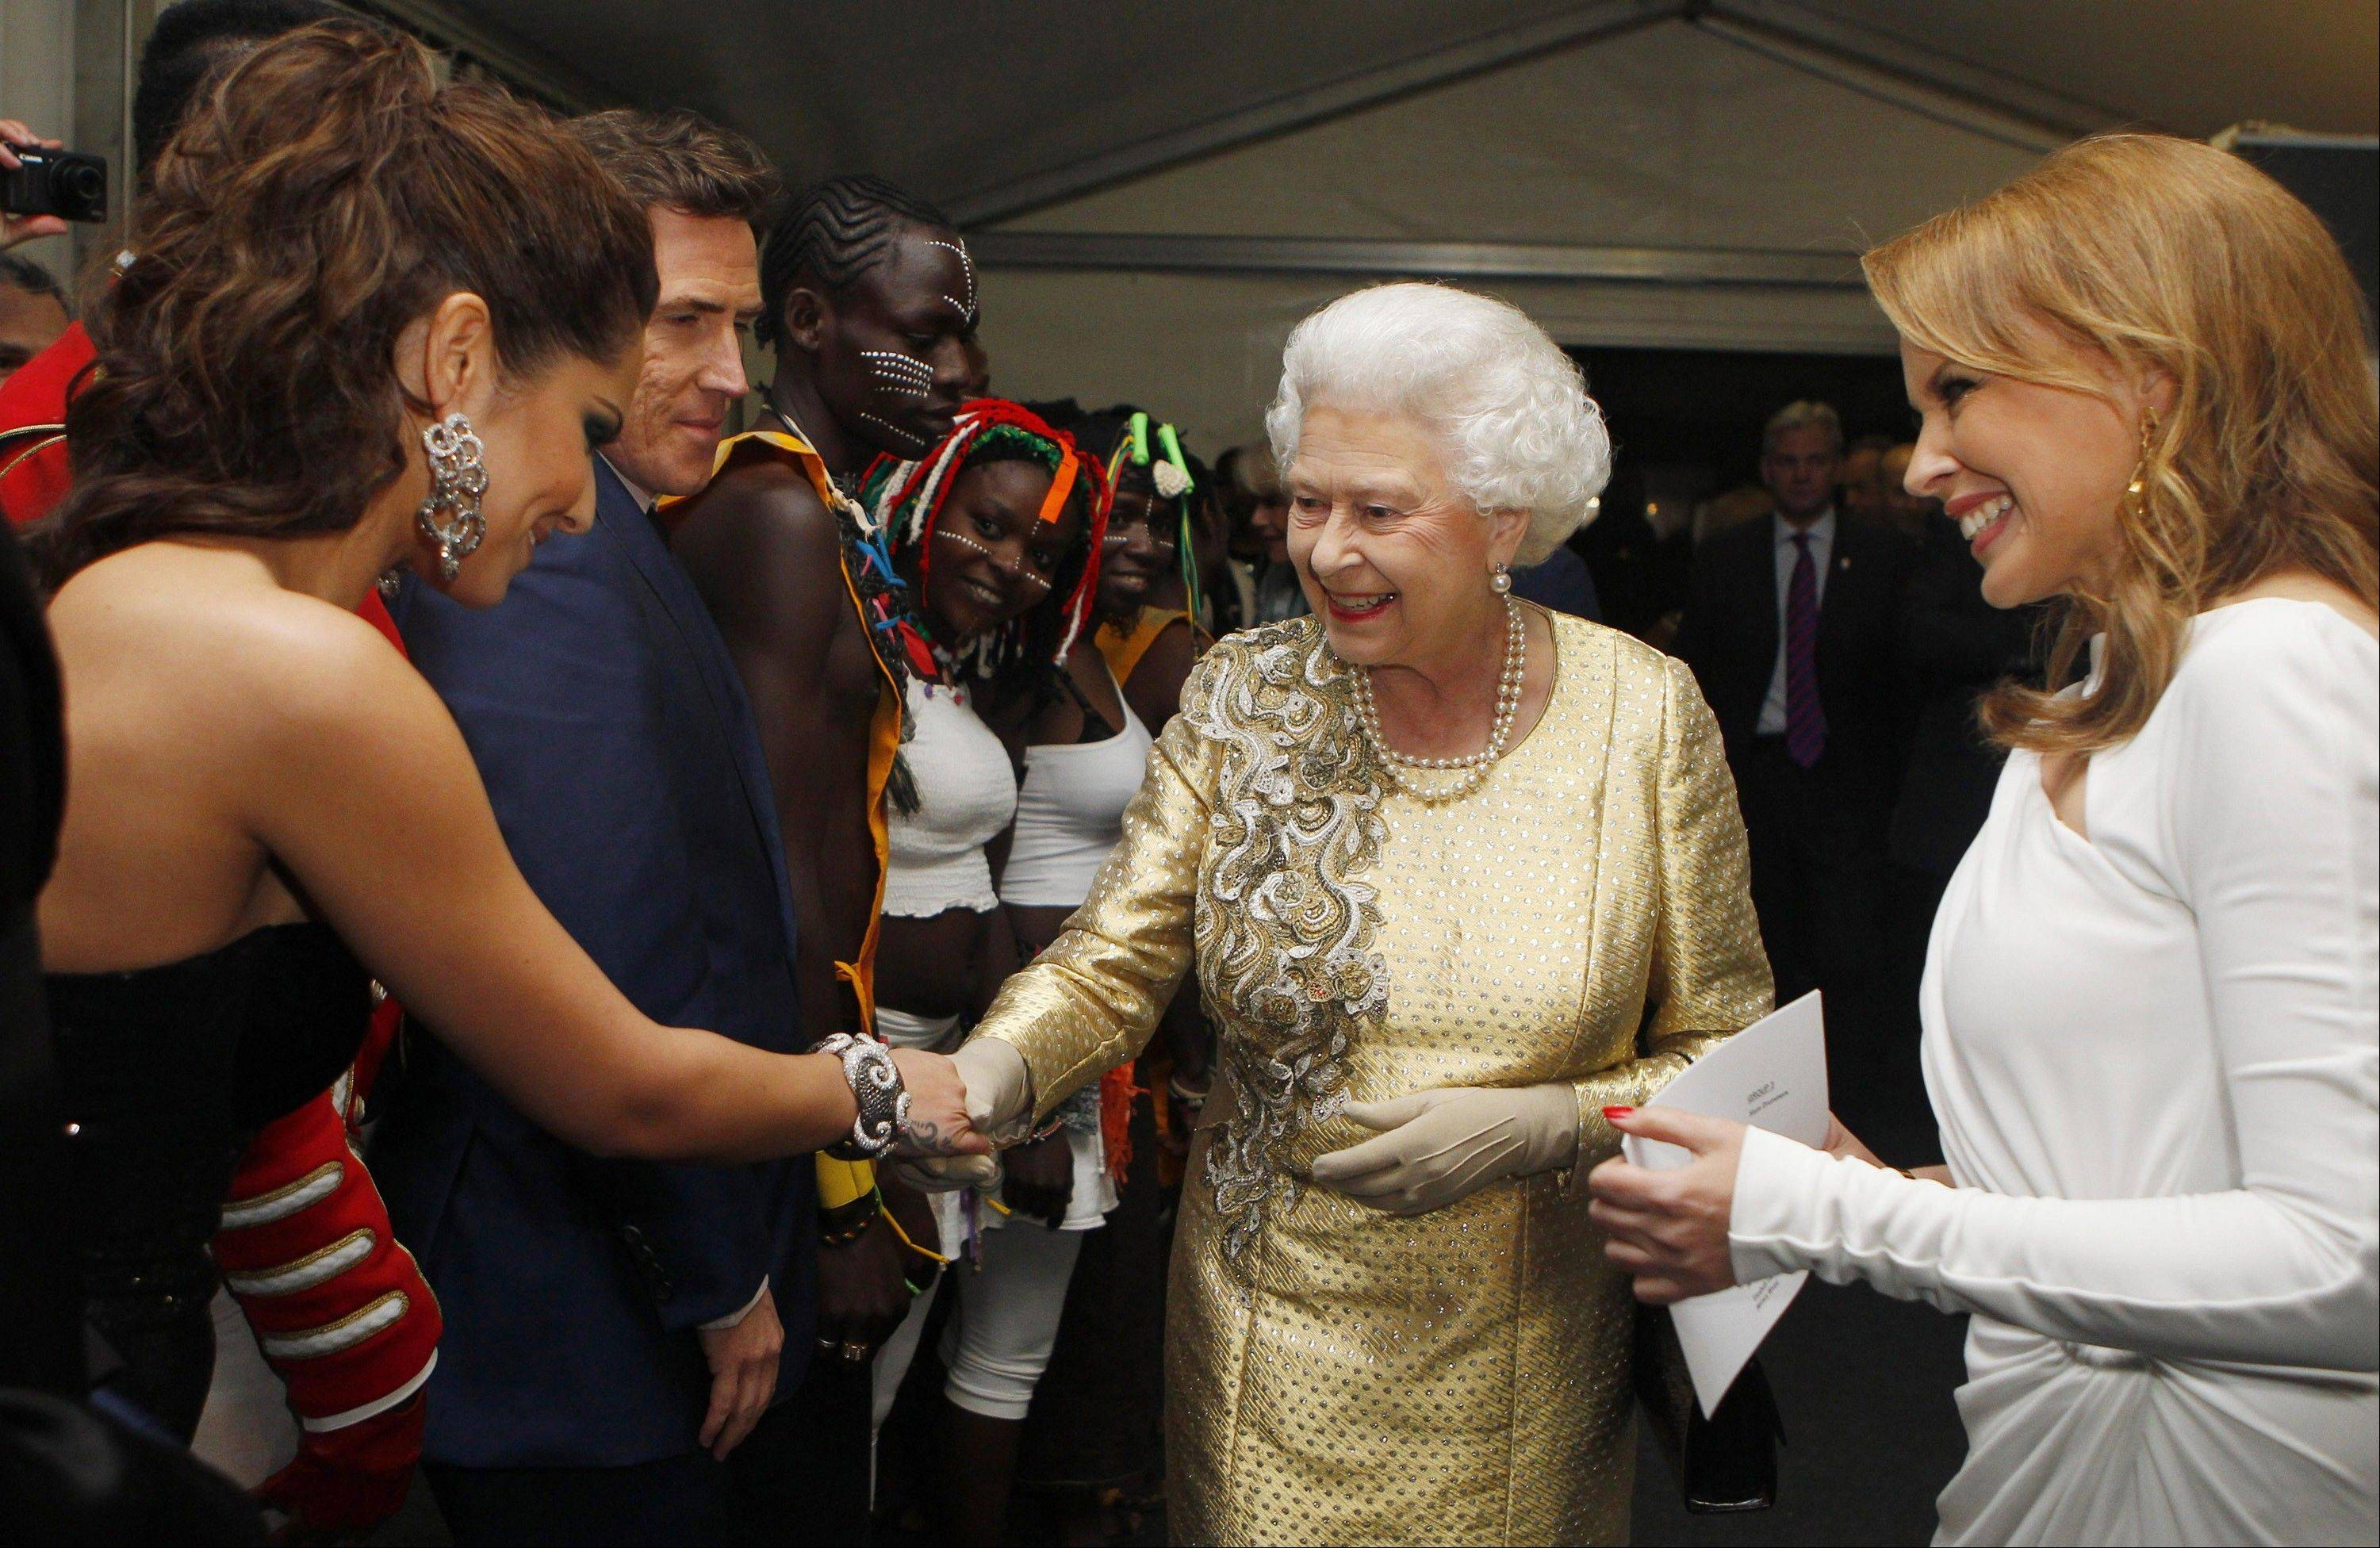 Queen Elizabeth II, center, meets Cheryl Cole backstage at the Diamond Jubilee Concert outside Buckingham Palace in London Monday, June 4, 2012.